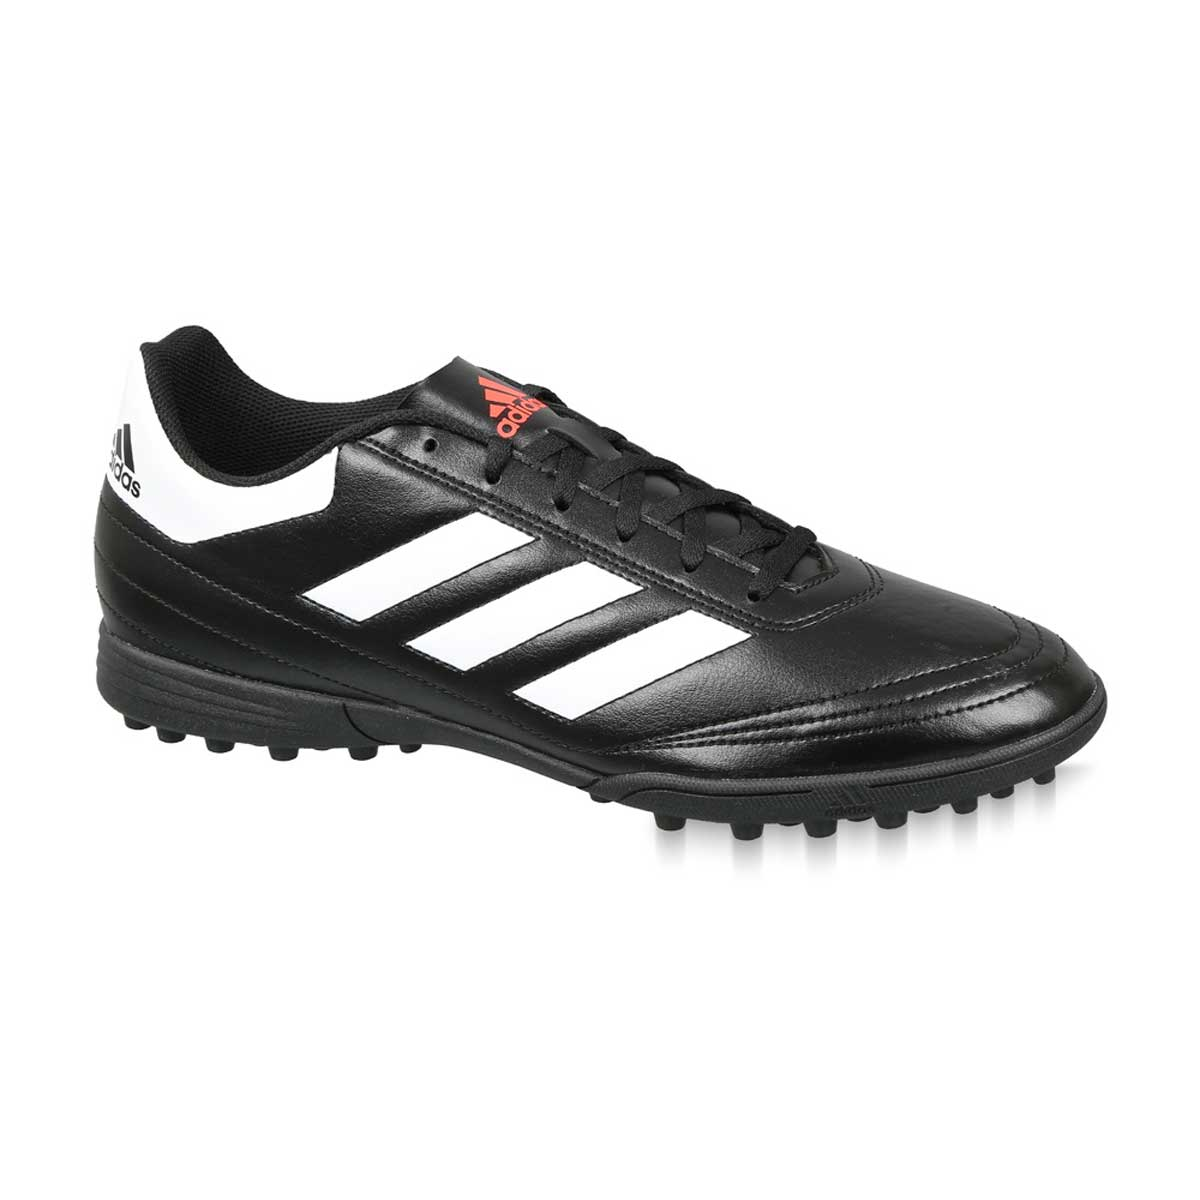 Buy Adidas Goletto VI TF Football Shoes (Black White) Online at Lowest  Price in India c82a65b1cef49